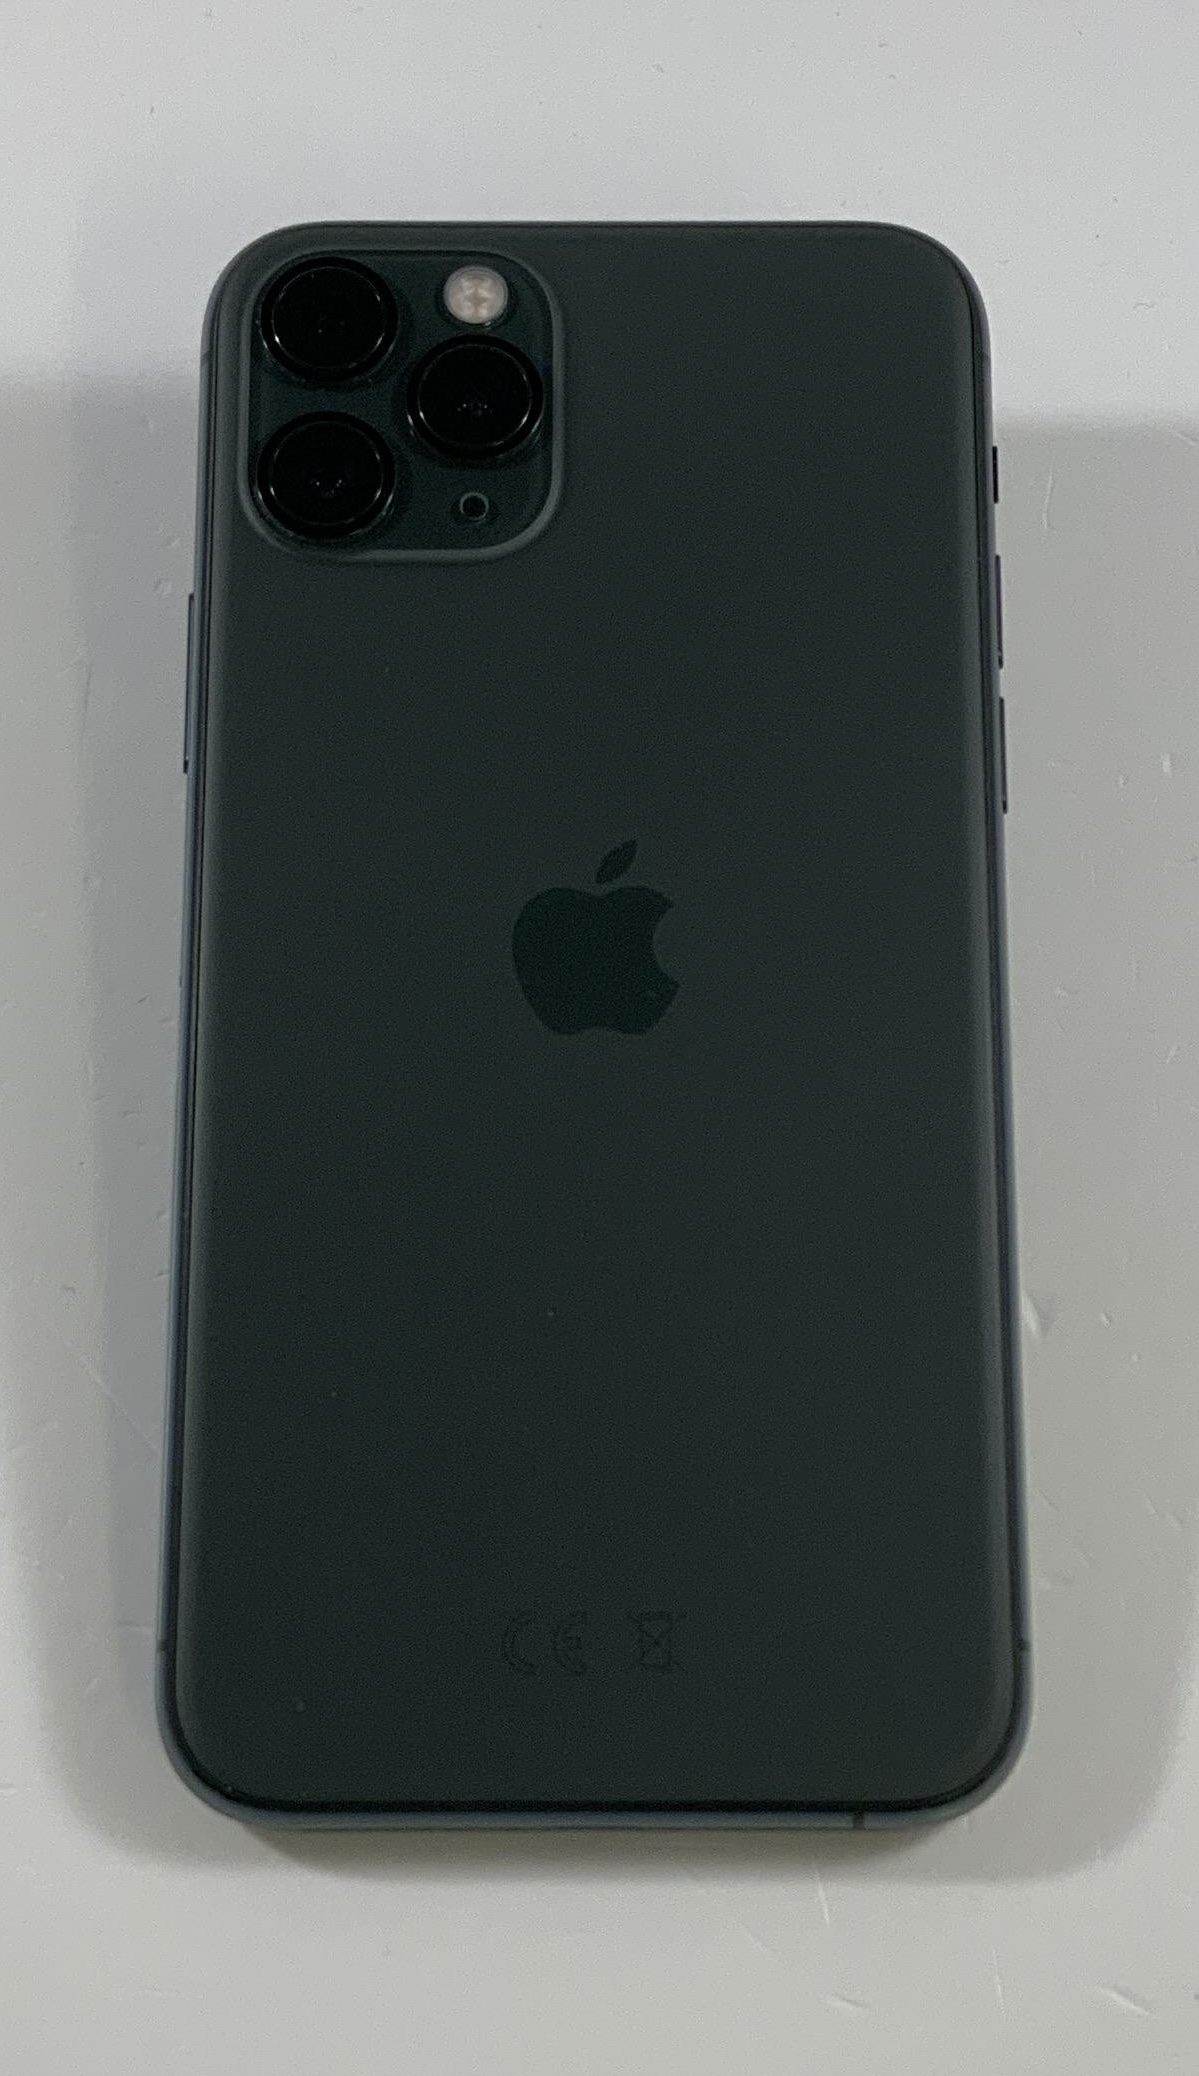 iPhone 11 Pro 64GB, 64GB, Midnight Green, obraz 2